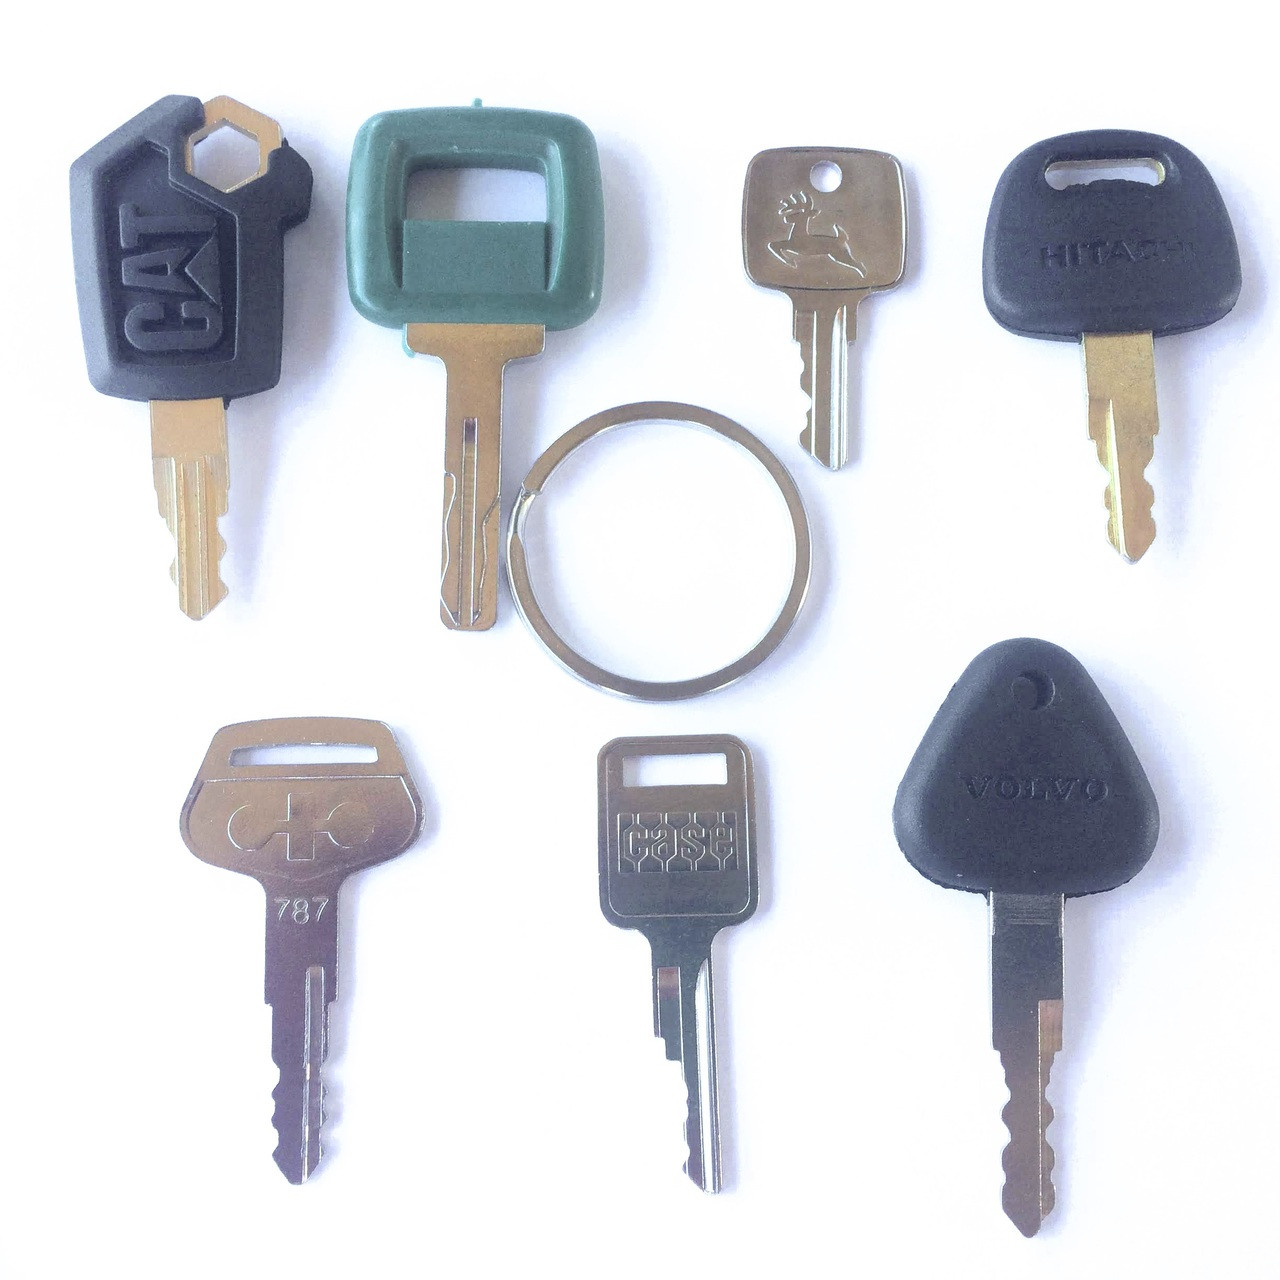 8 PC Equipment key set